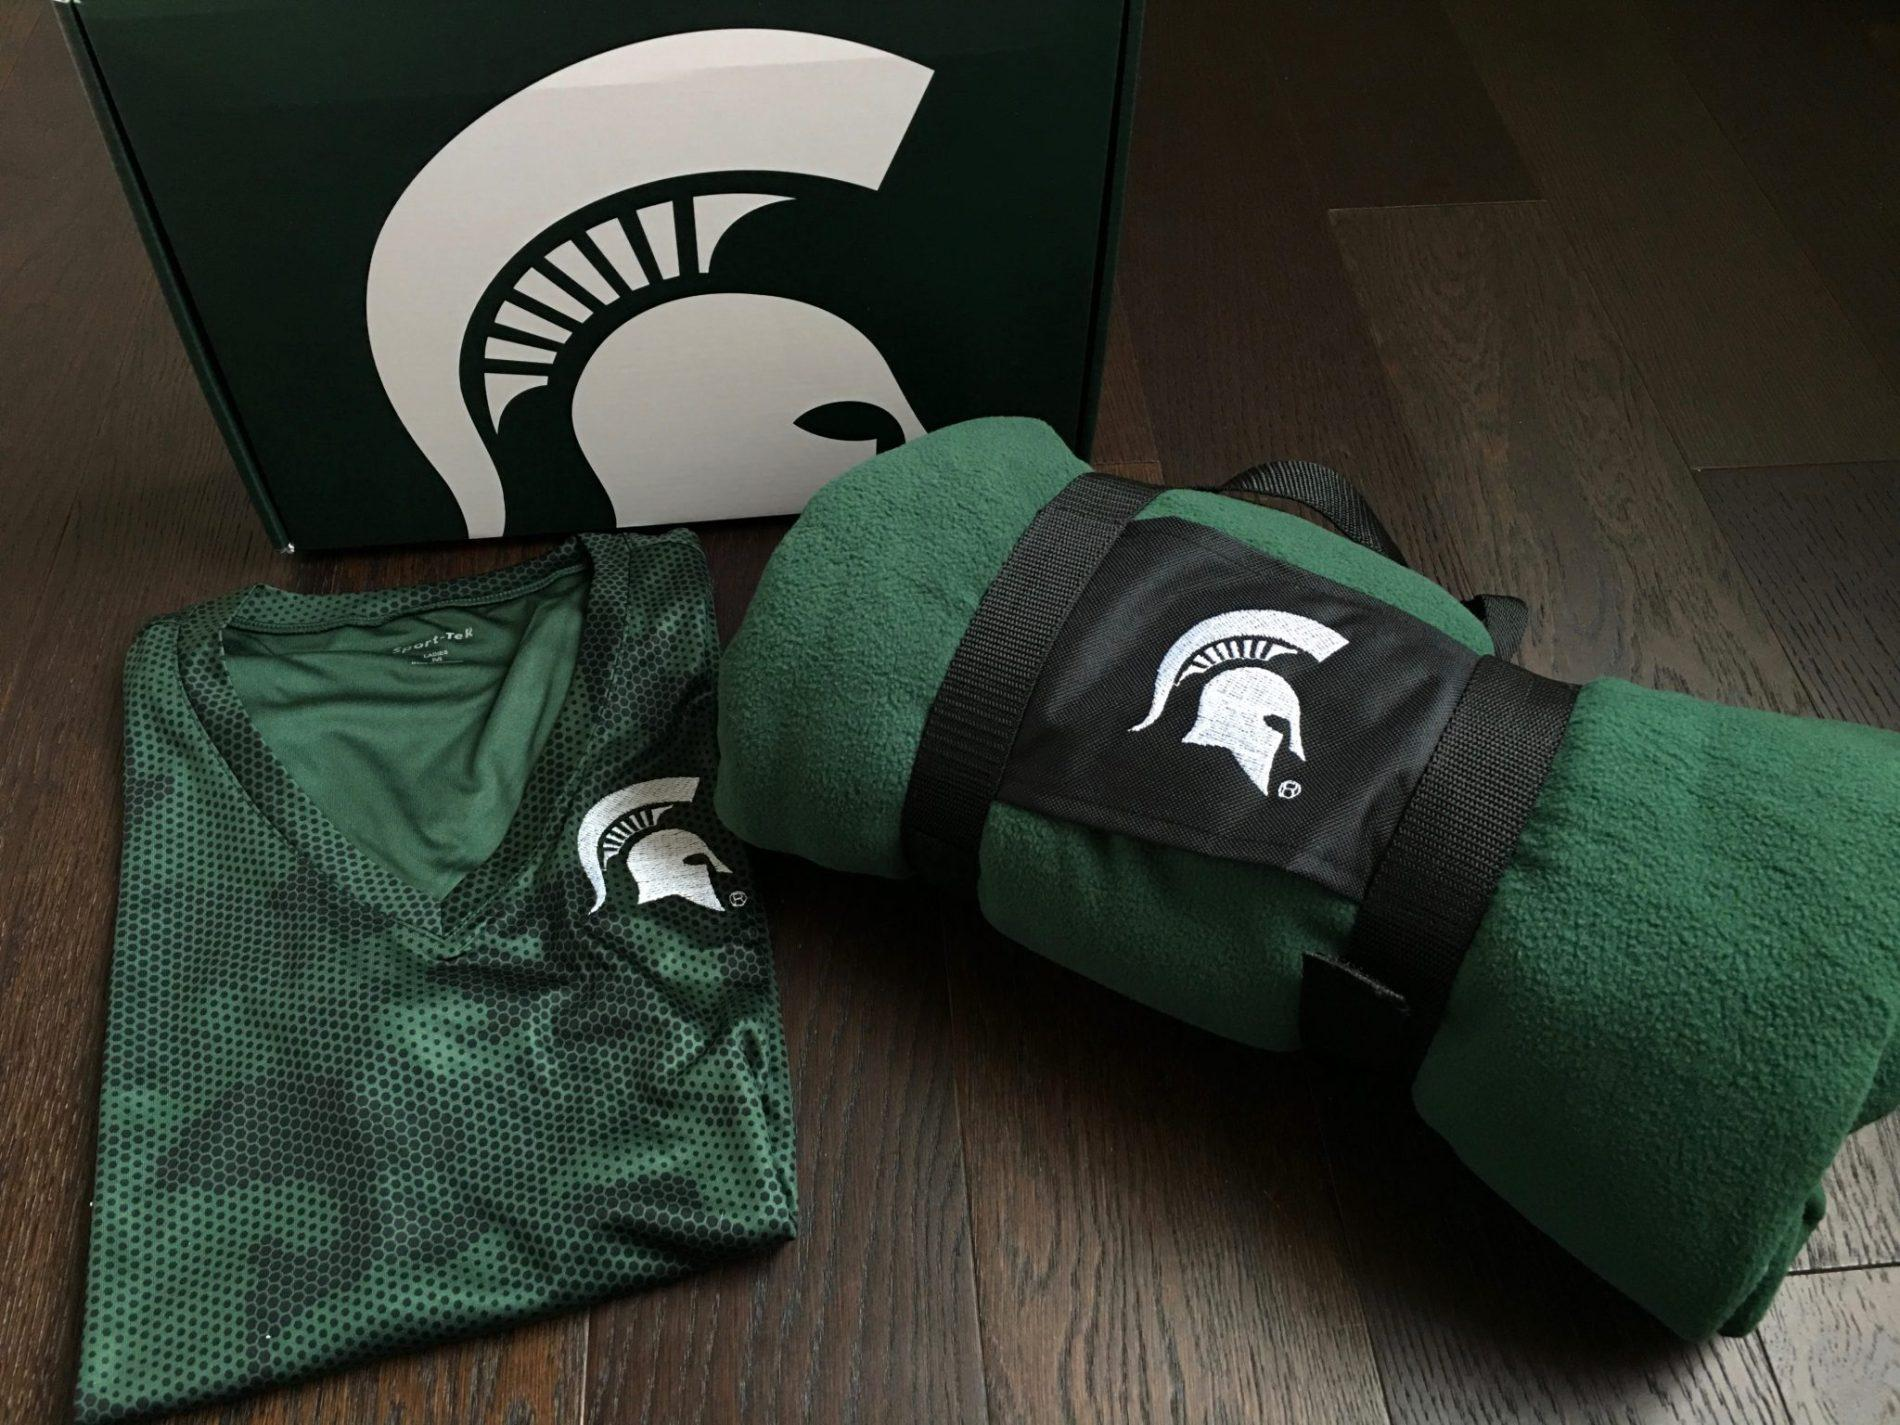 Spartan Box Michigan State Subscription Box Review – July 2018